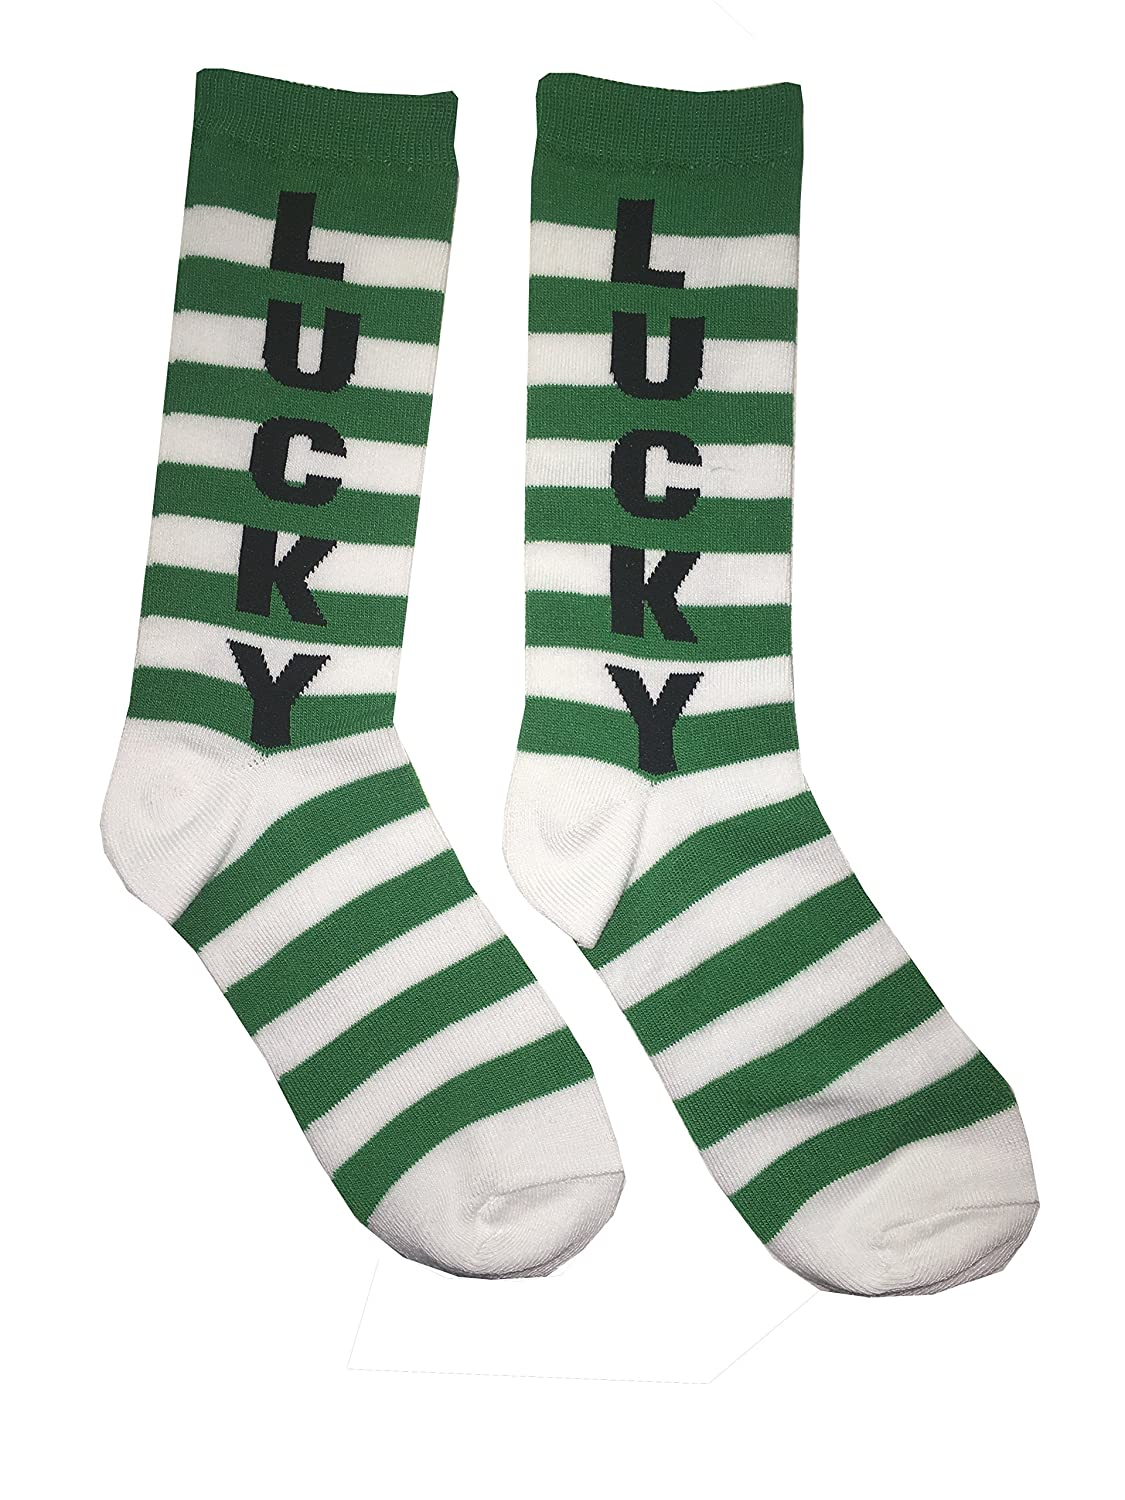 St. Patrick's Day Irish Novelty Knee High OR Crew Socks - for Women or Teens -Variations LUCKY SHAMROCK IRISH HORSESHOE